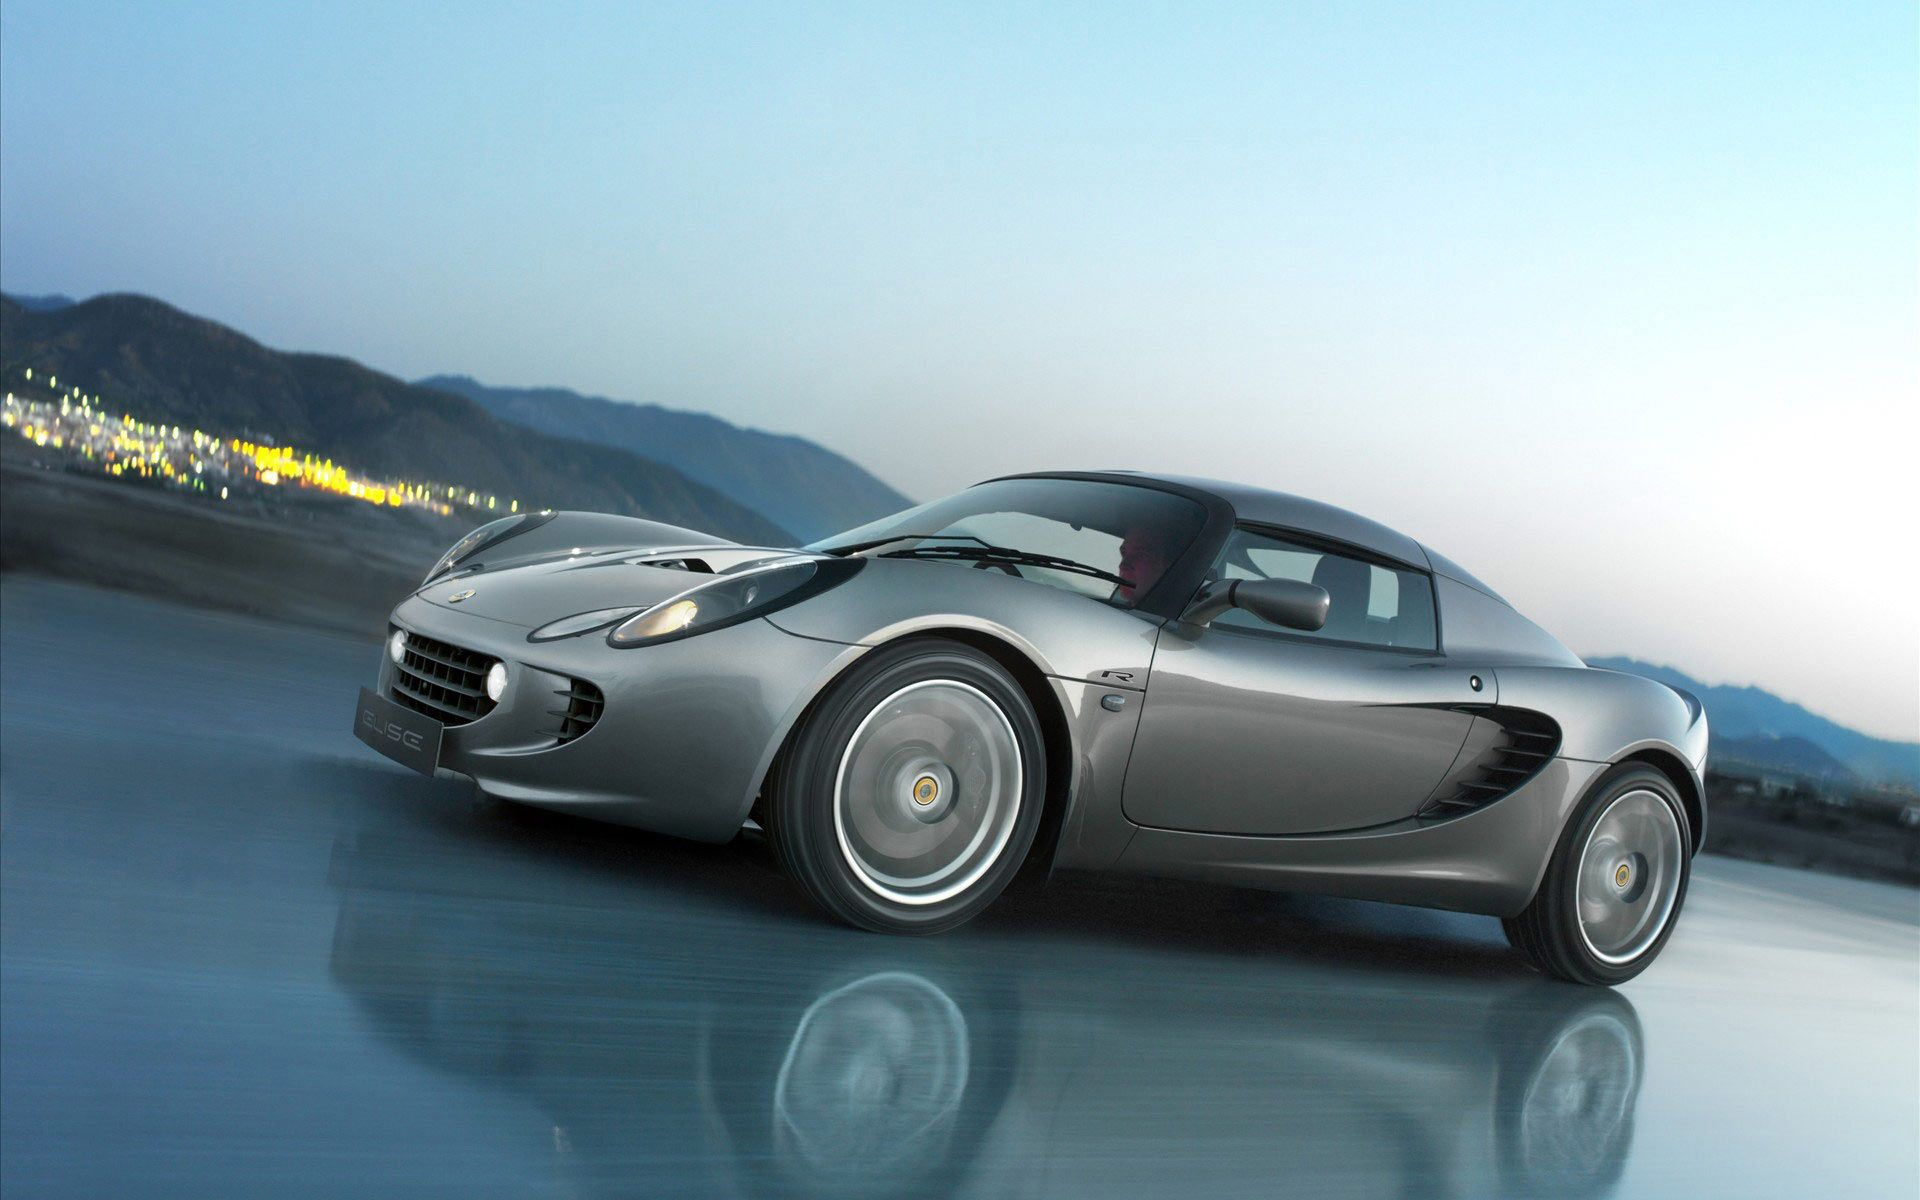 Amazing Lotus Cars Full Hd Wallpapers Collection Amazing Car